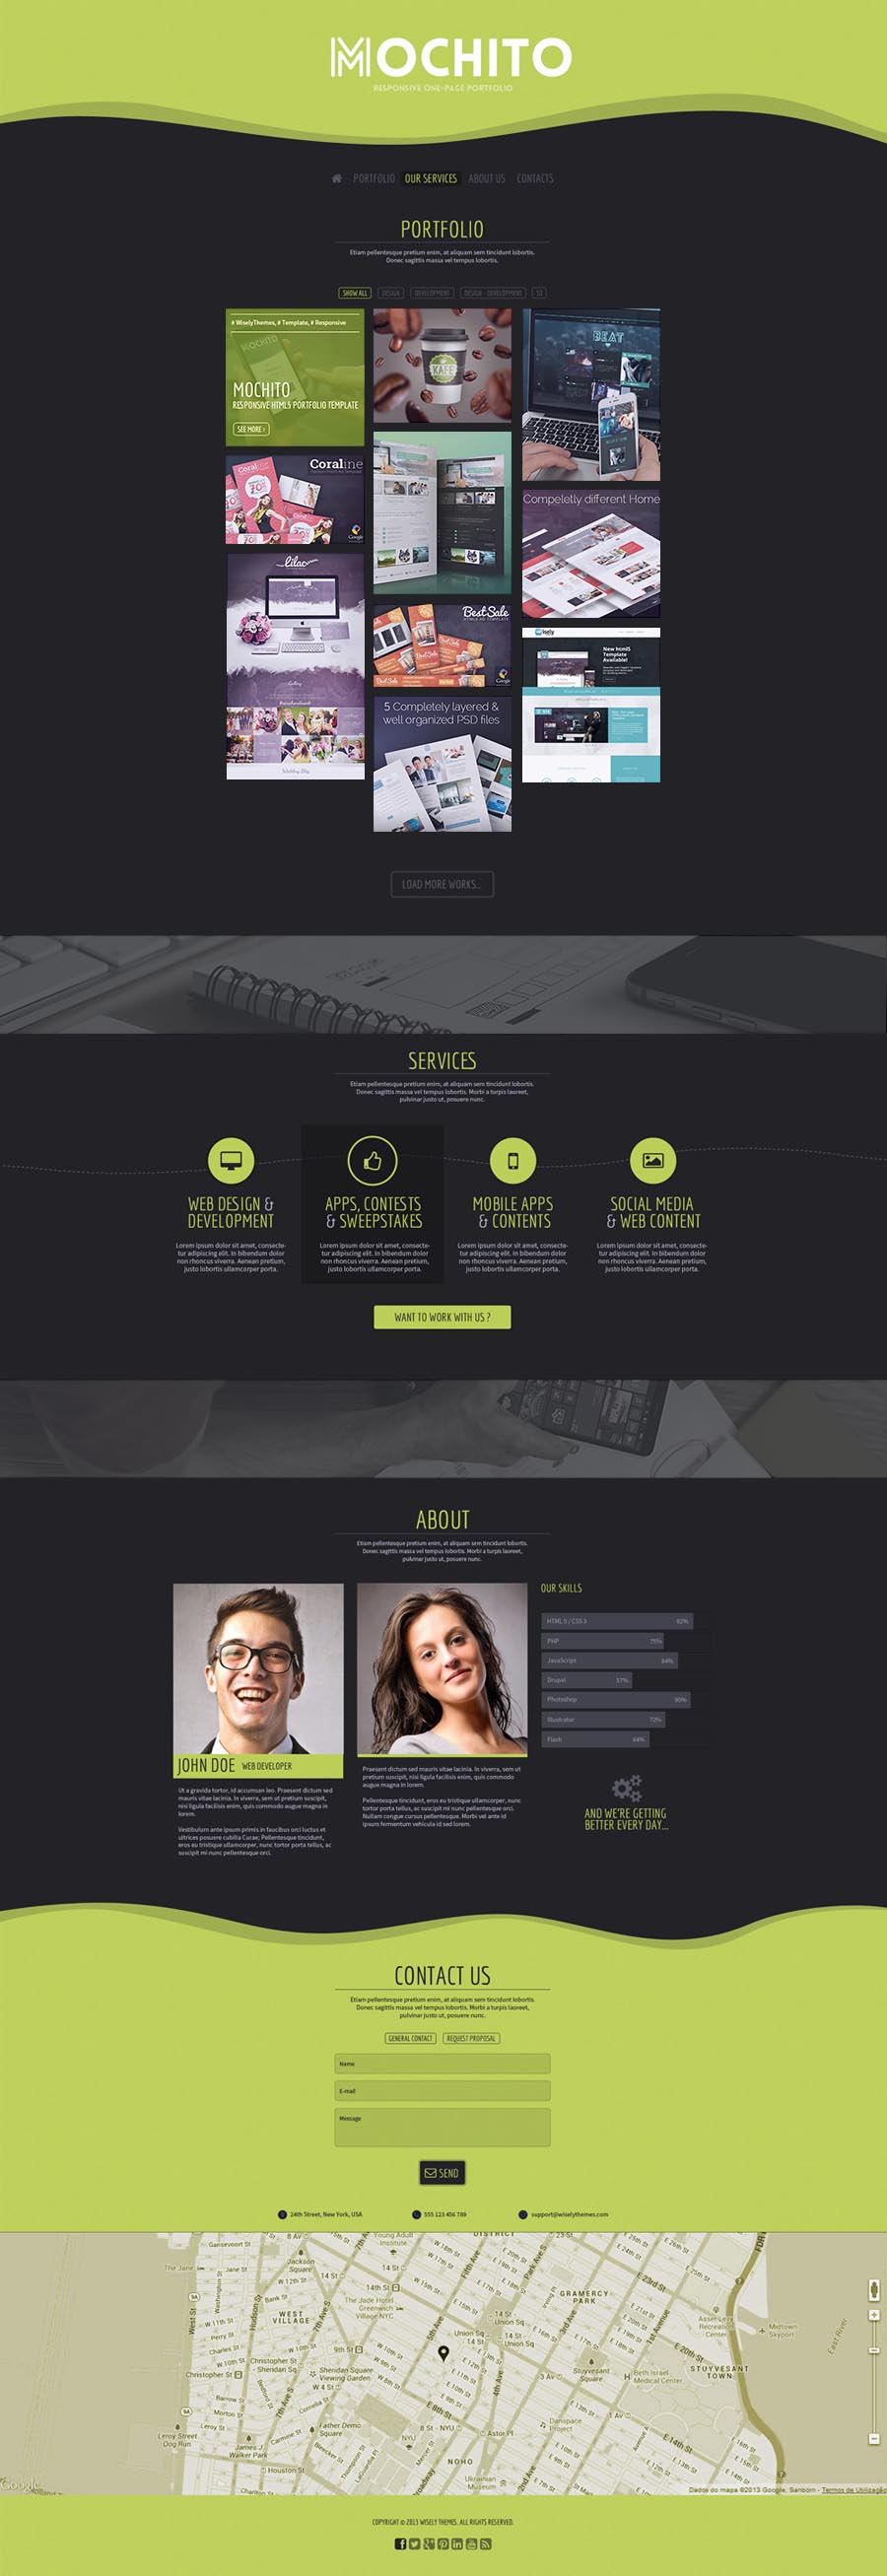 agora clean joomla 2 5 template joomla themeforest mochito one page portfolio joomla template by